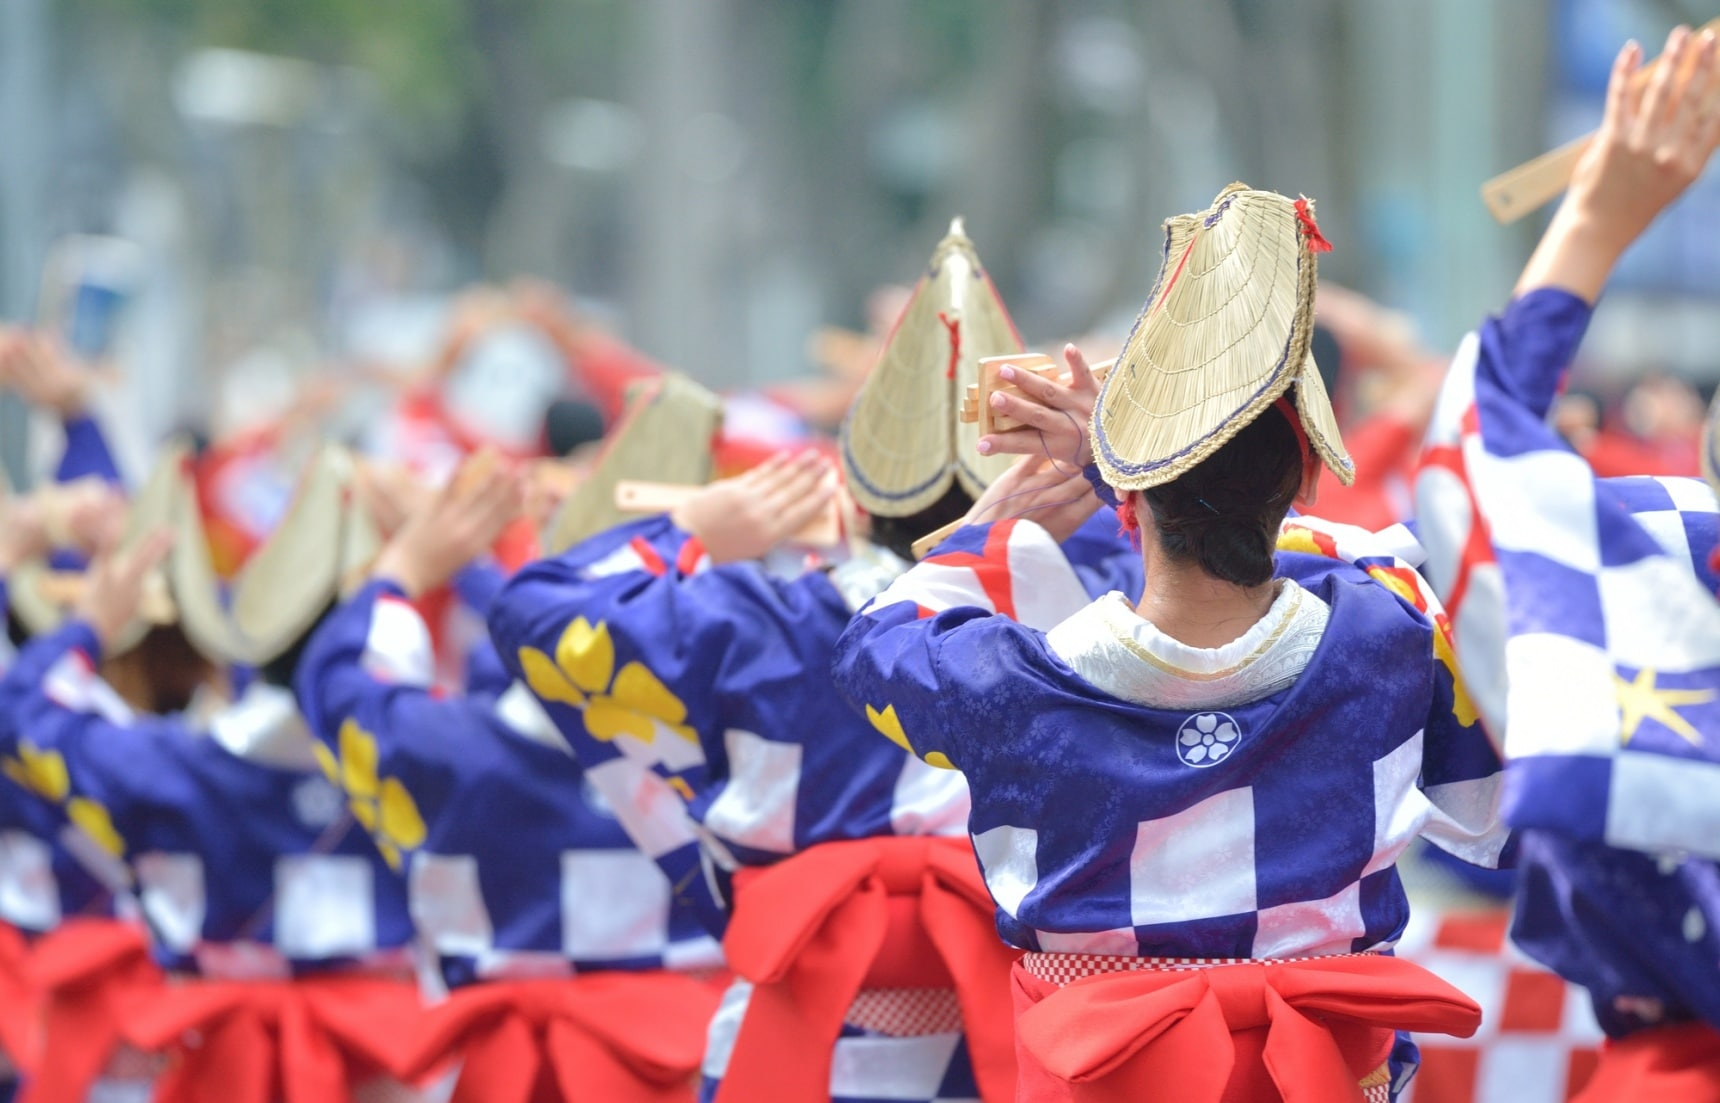 Enjoy Cross-Cultural Festivals at Yoyogi Park